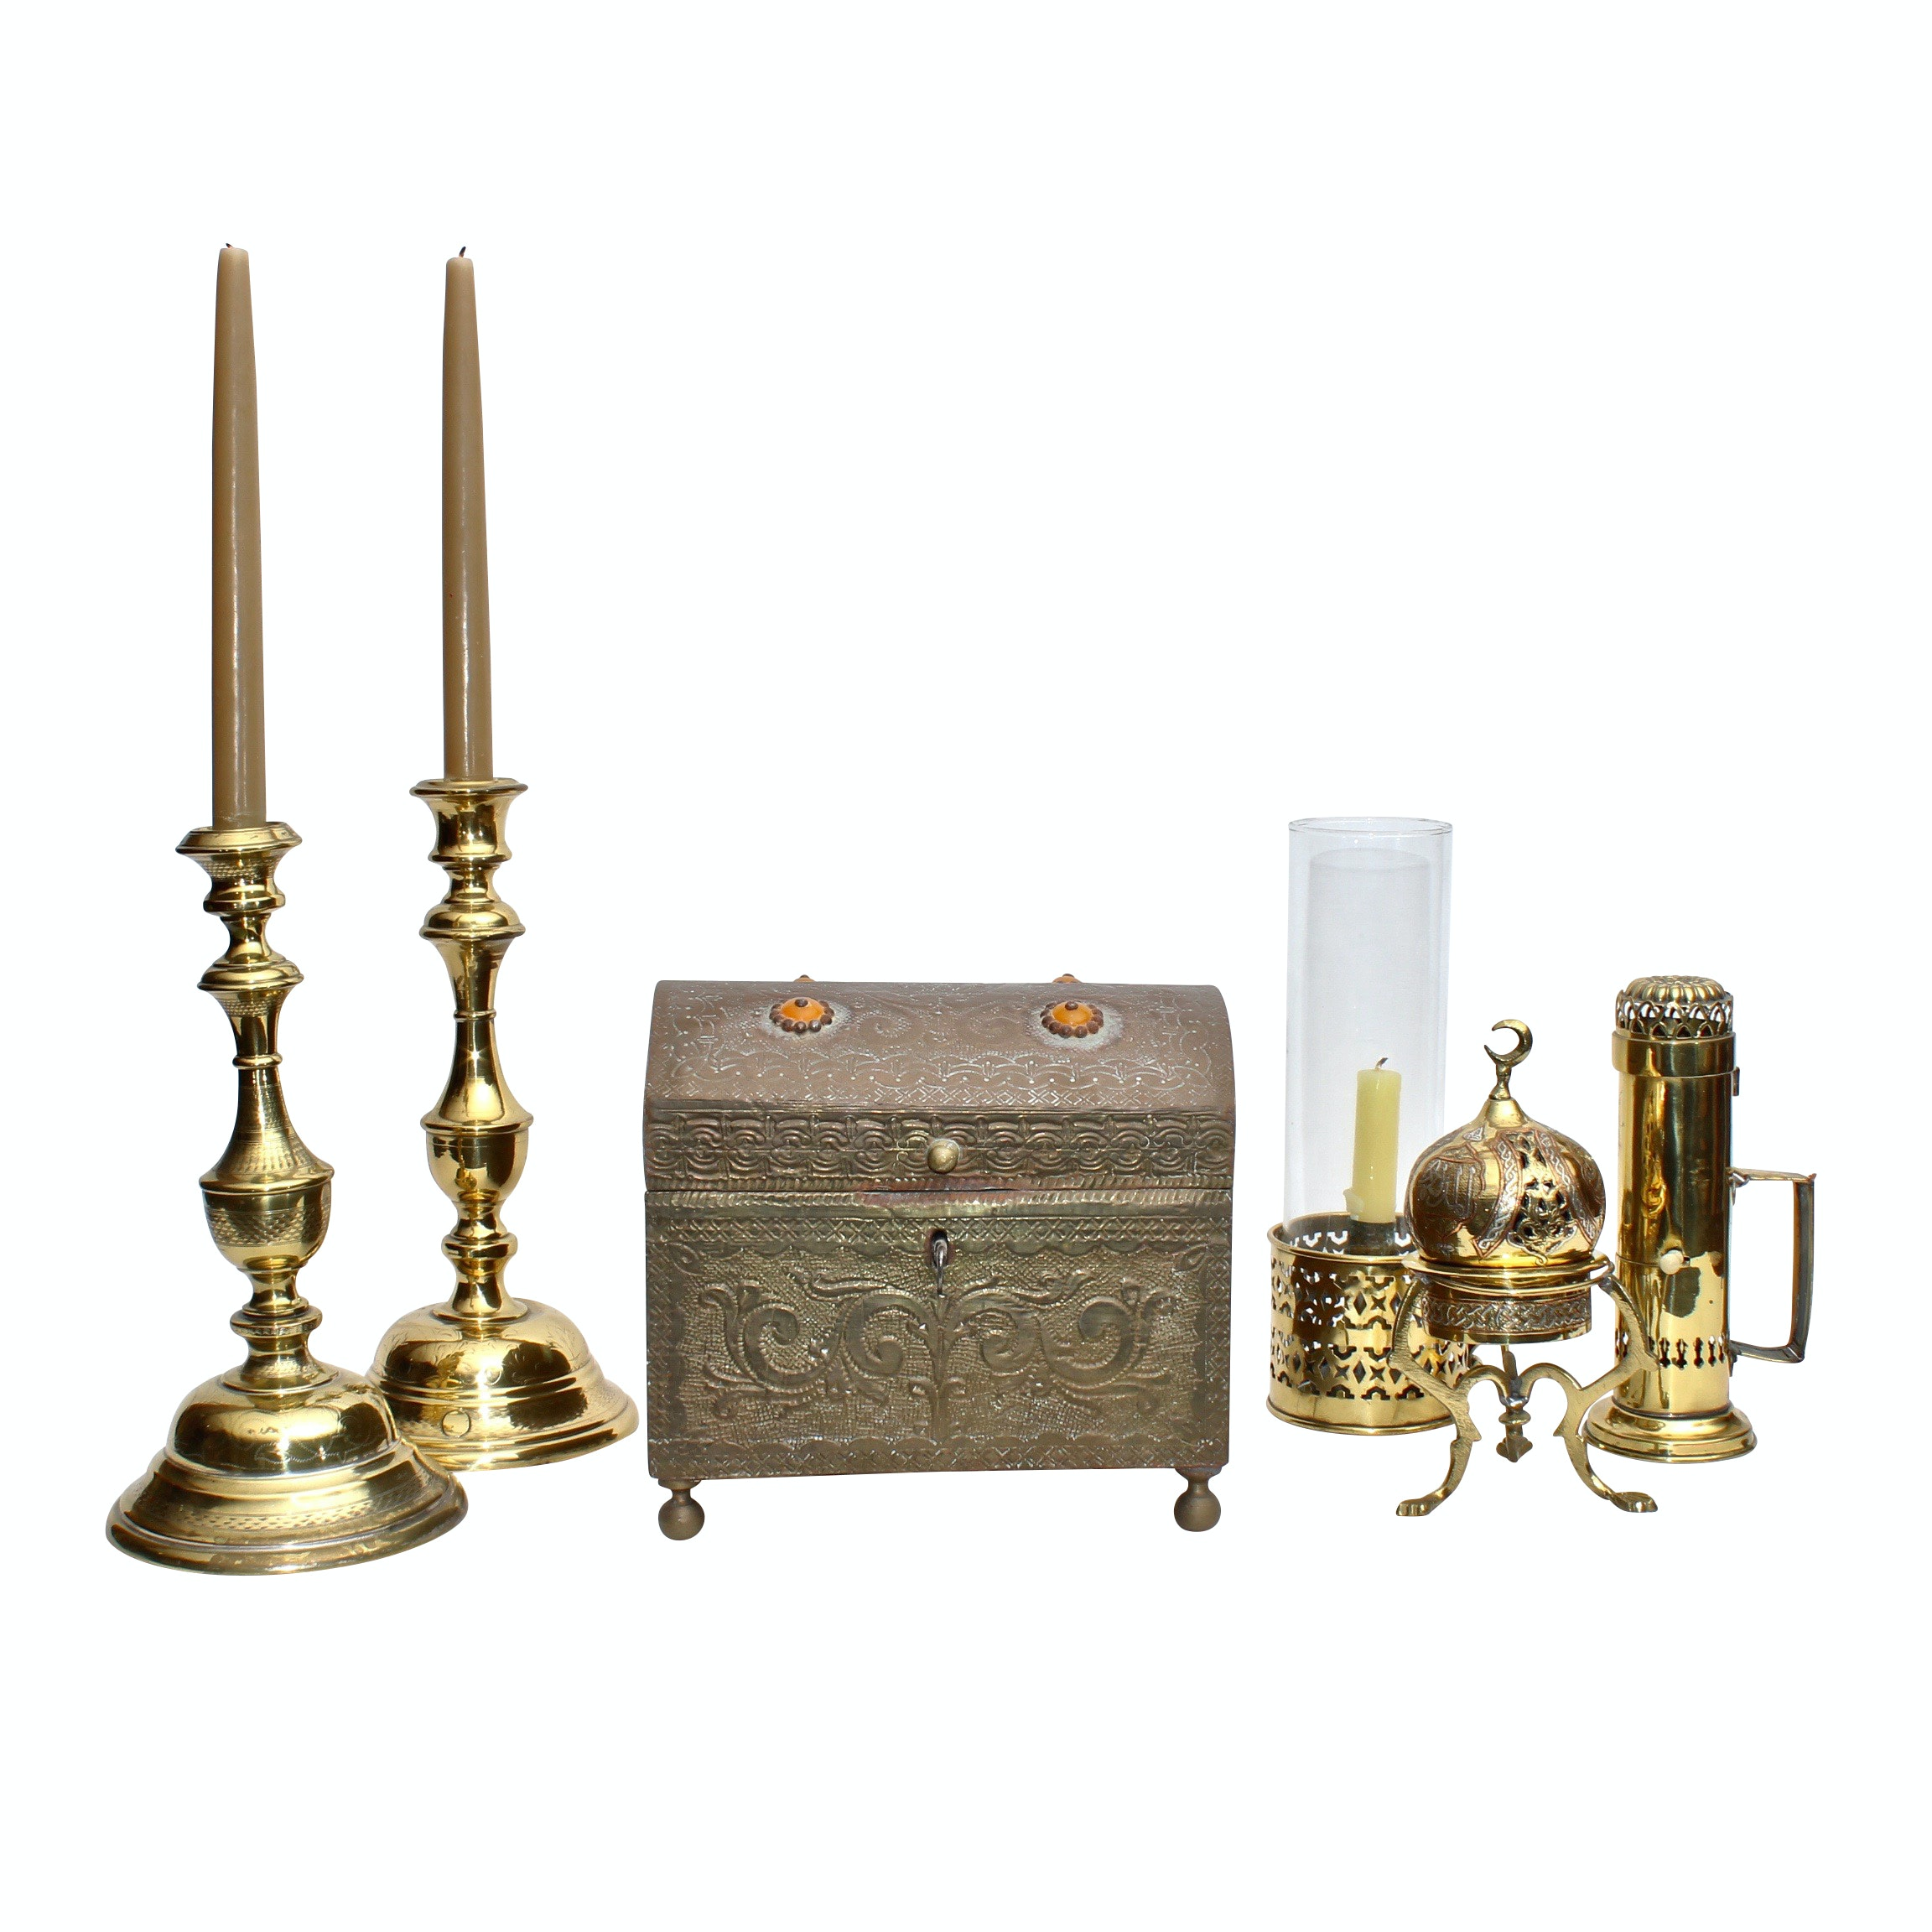 Brass Candlesticks and Candle Lantern with Trinket Box and Decor